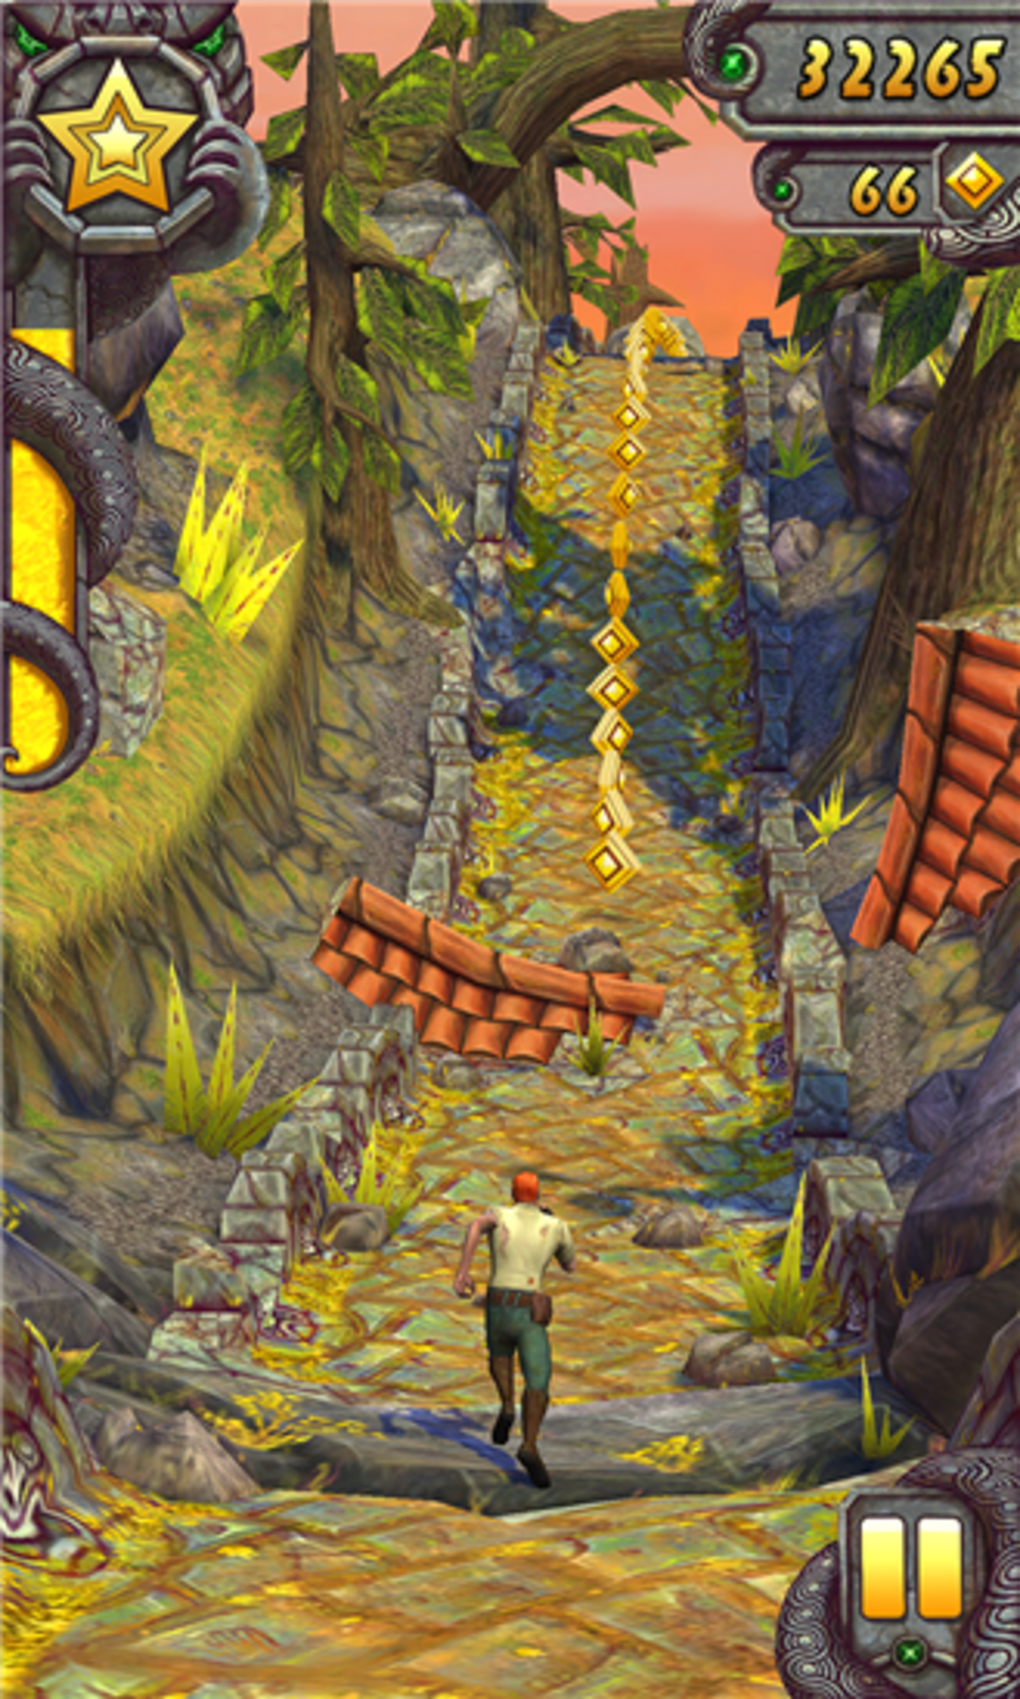 Download temple run 2 apk for android & ipa for iphone free.